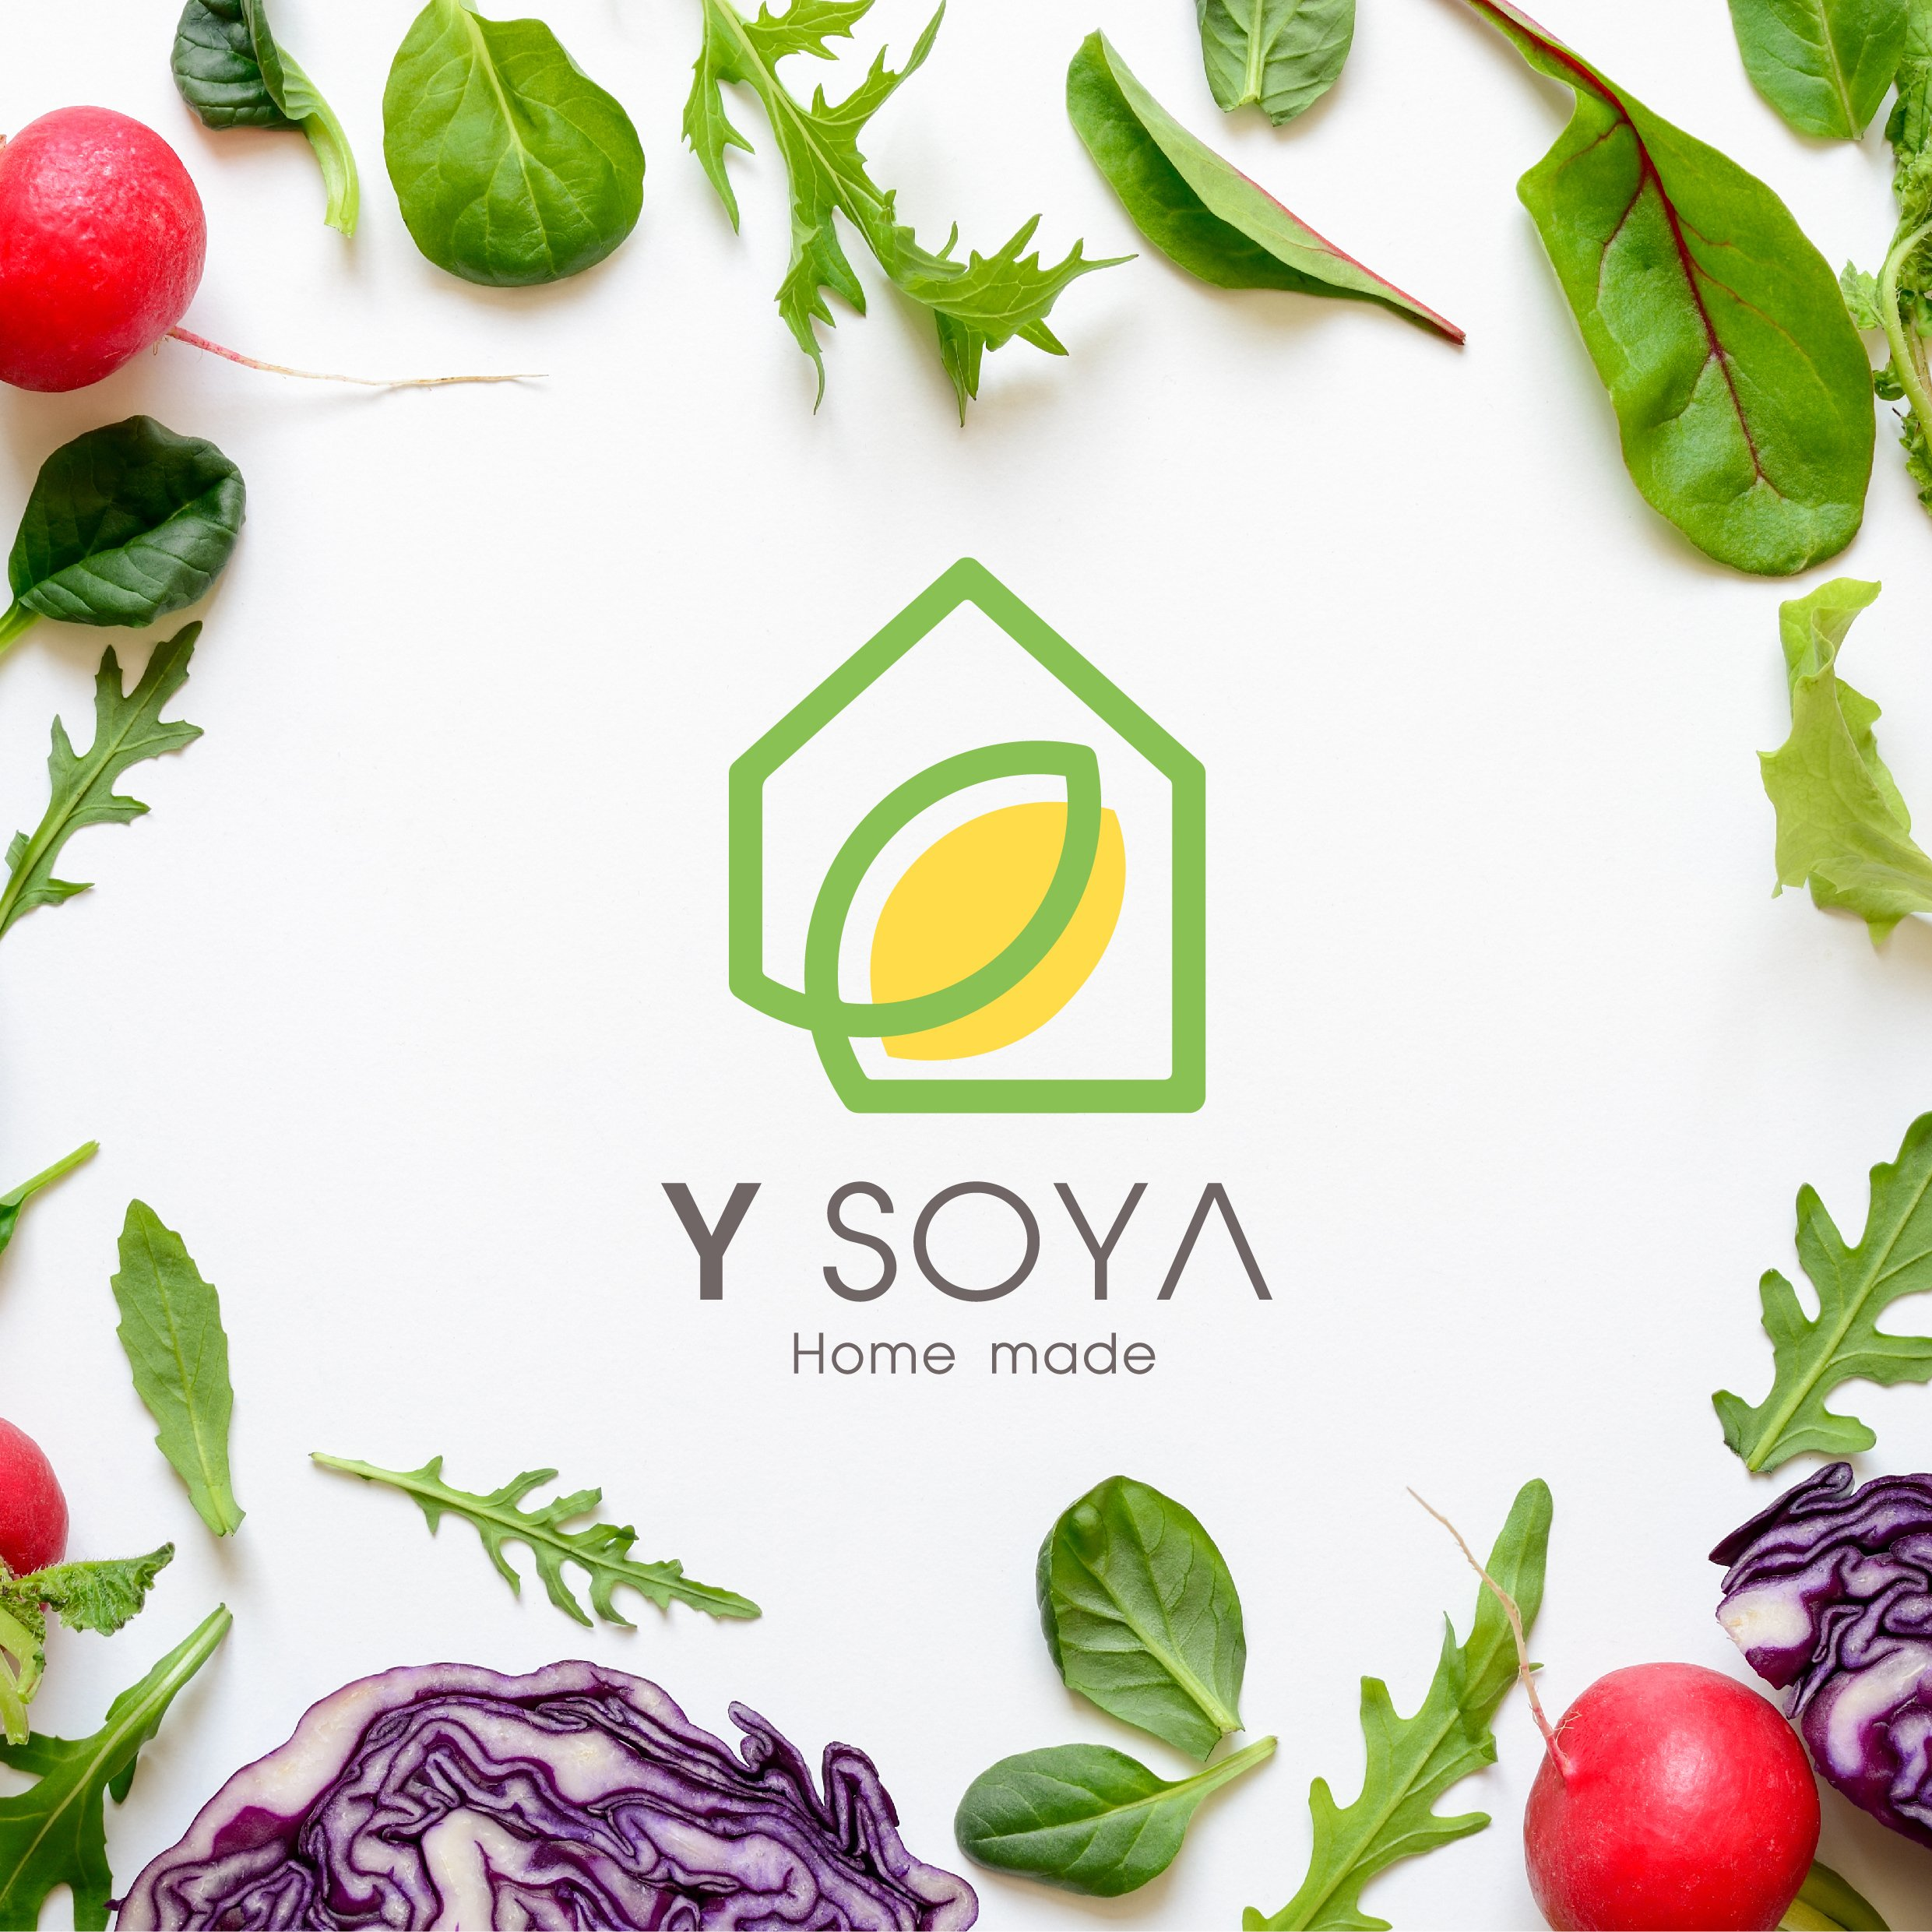 LOGO_Y soya home made1